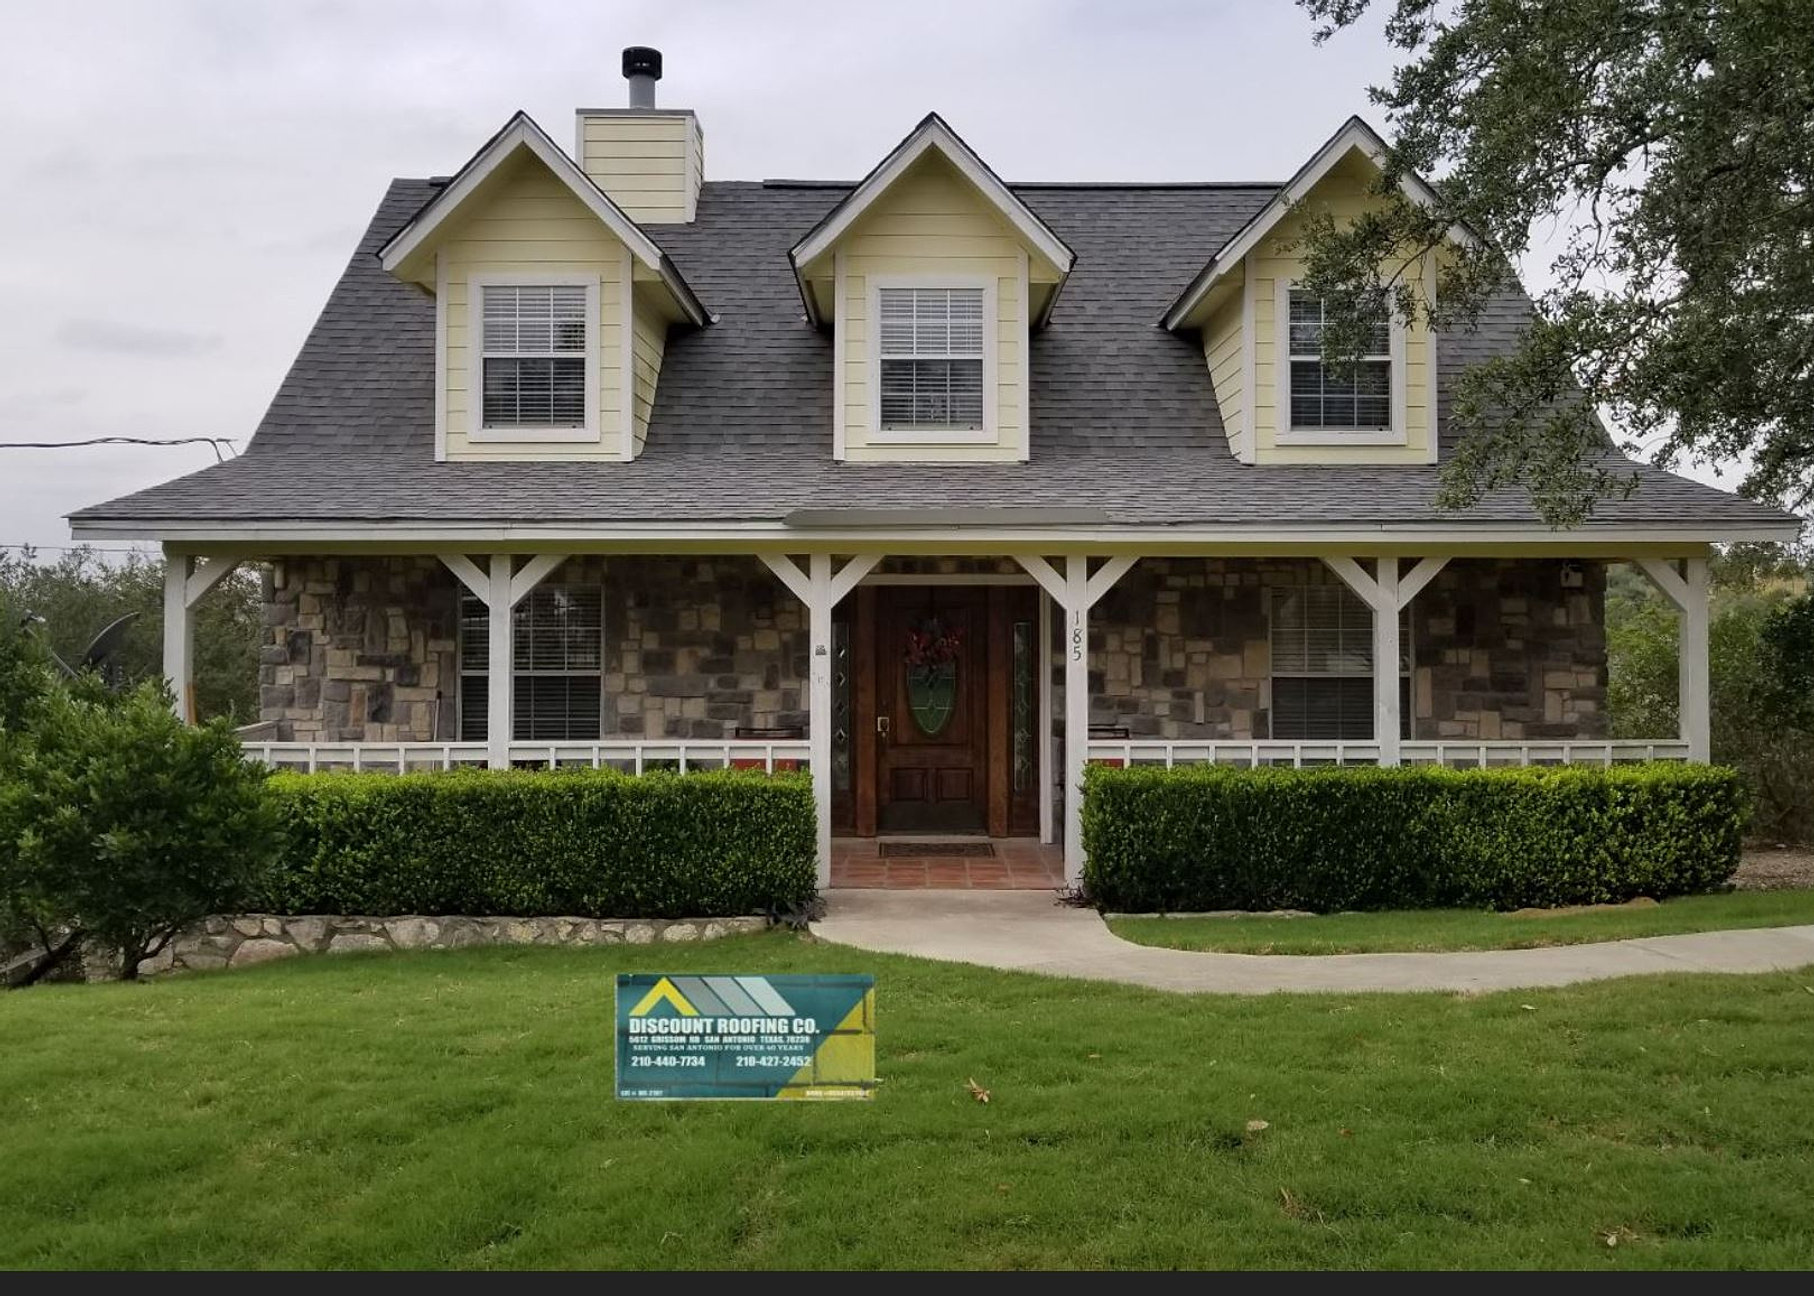 Discount Roofing Co San Antonio Roofing Companies In San